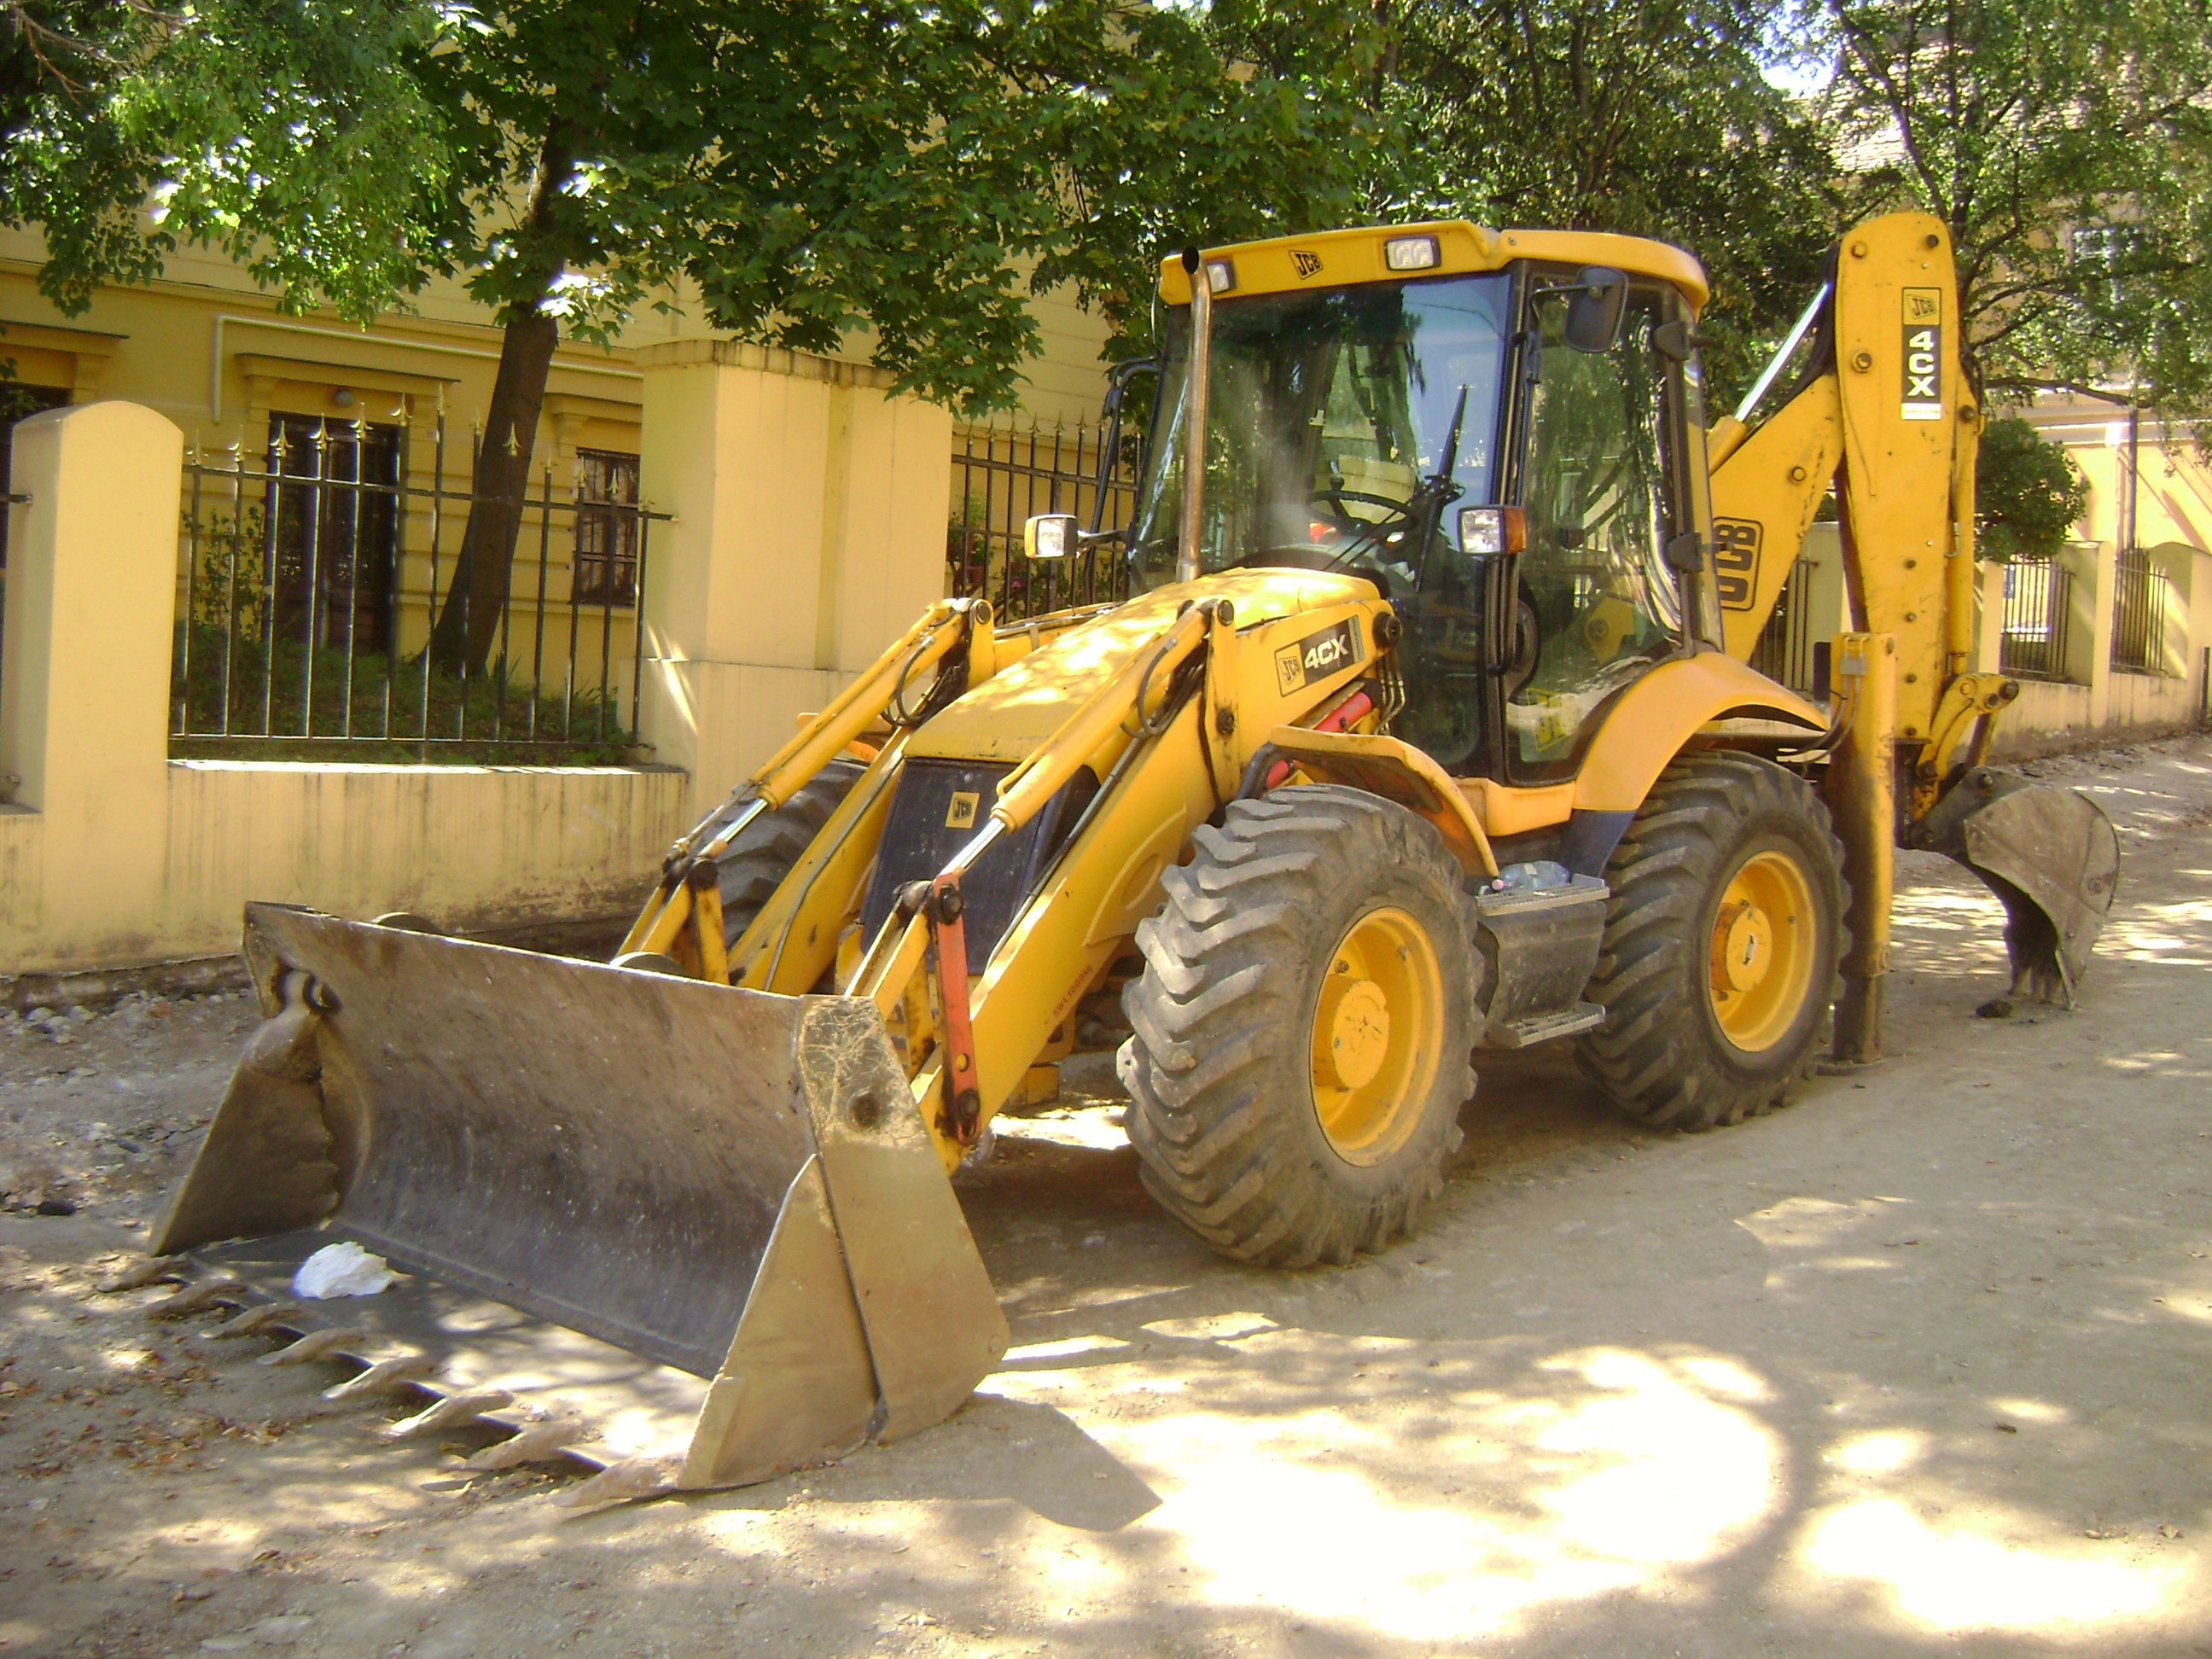 File:JCB 4CX backhoe loader in Sibiu, România - front view ...